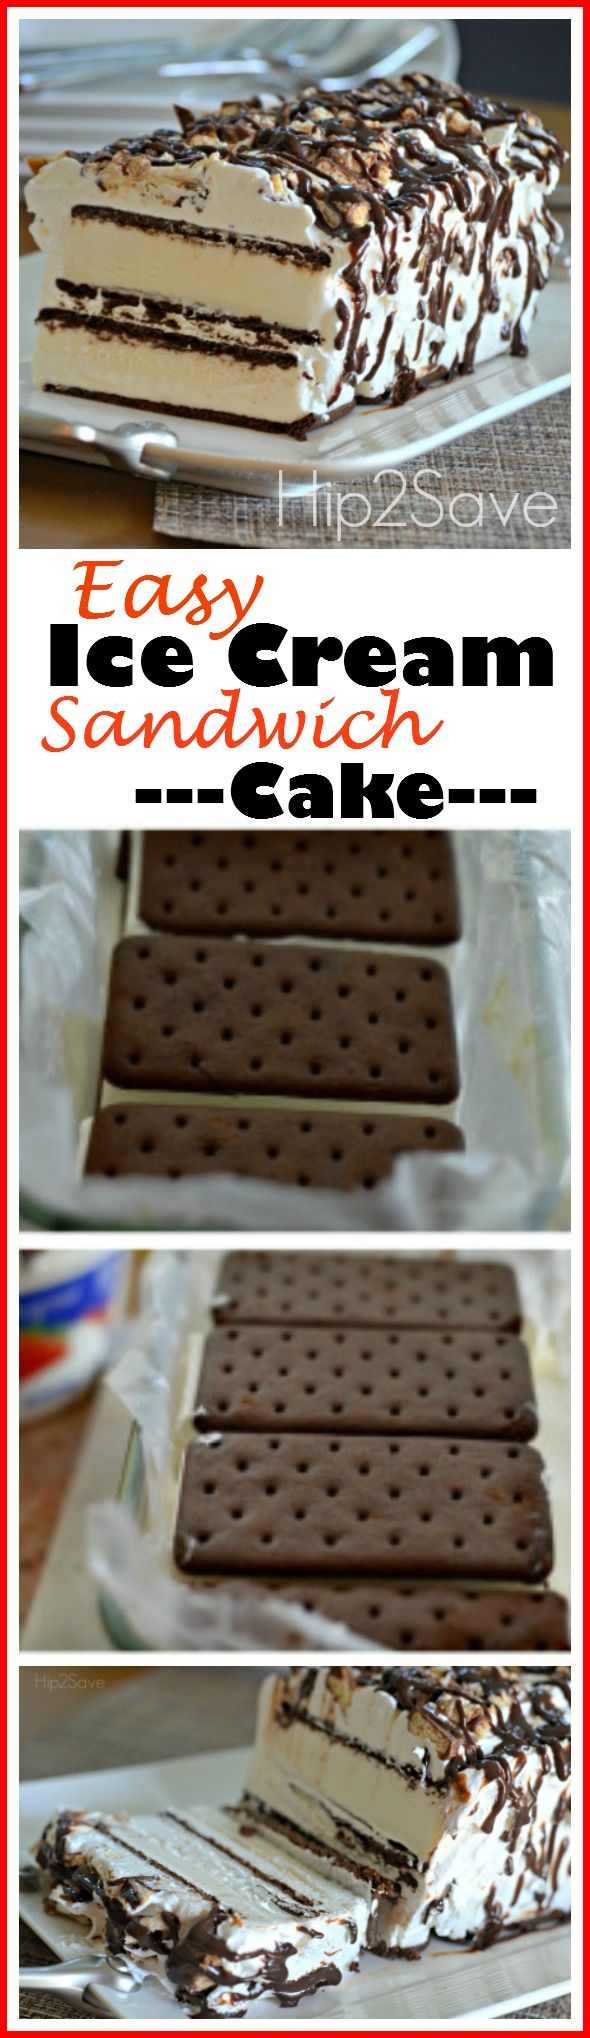 Super Easy Ice Cream Sandwich Cake Recipe